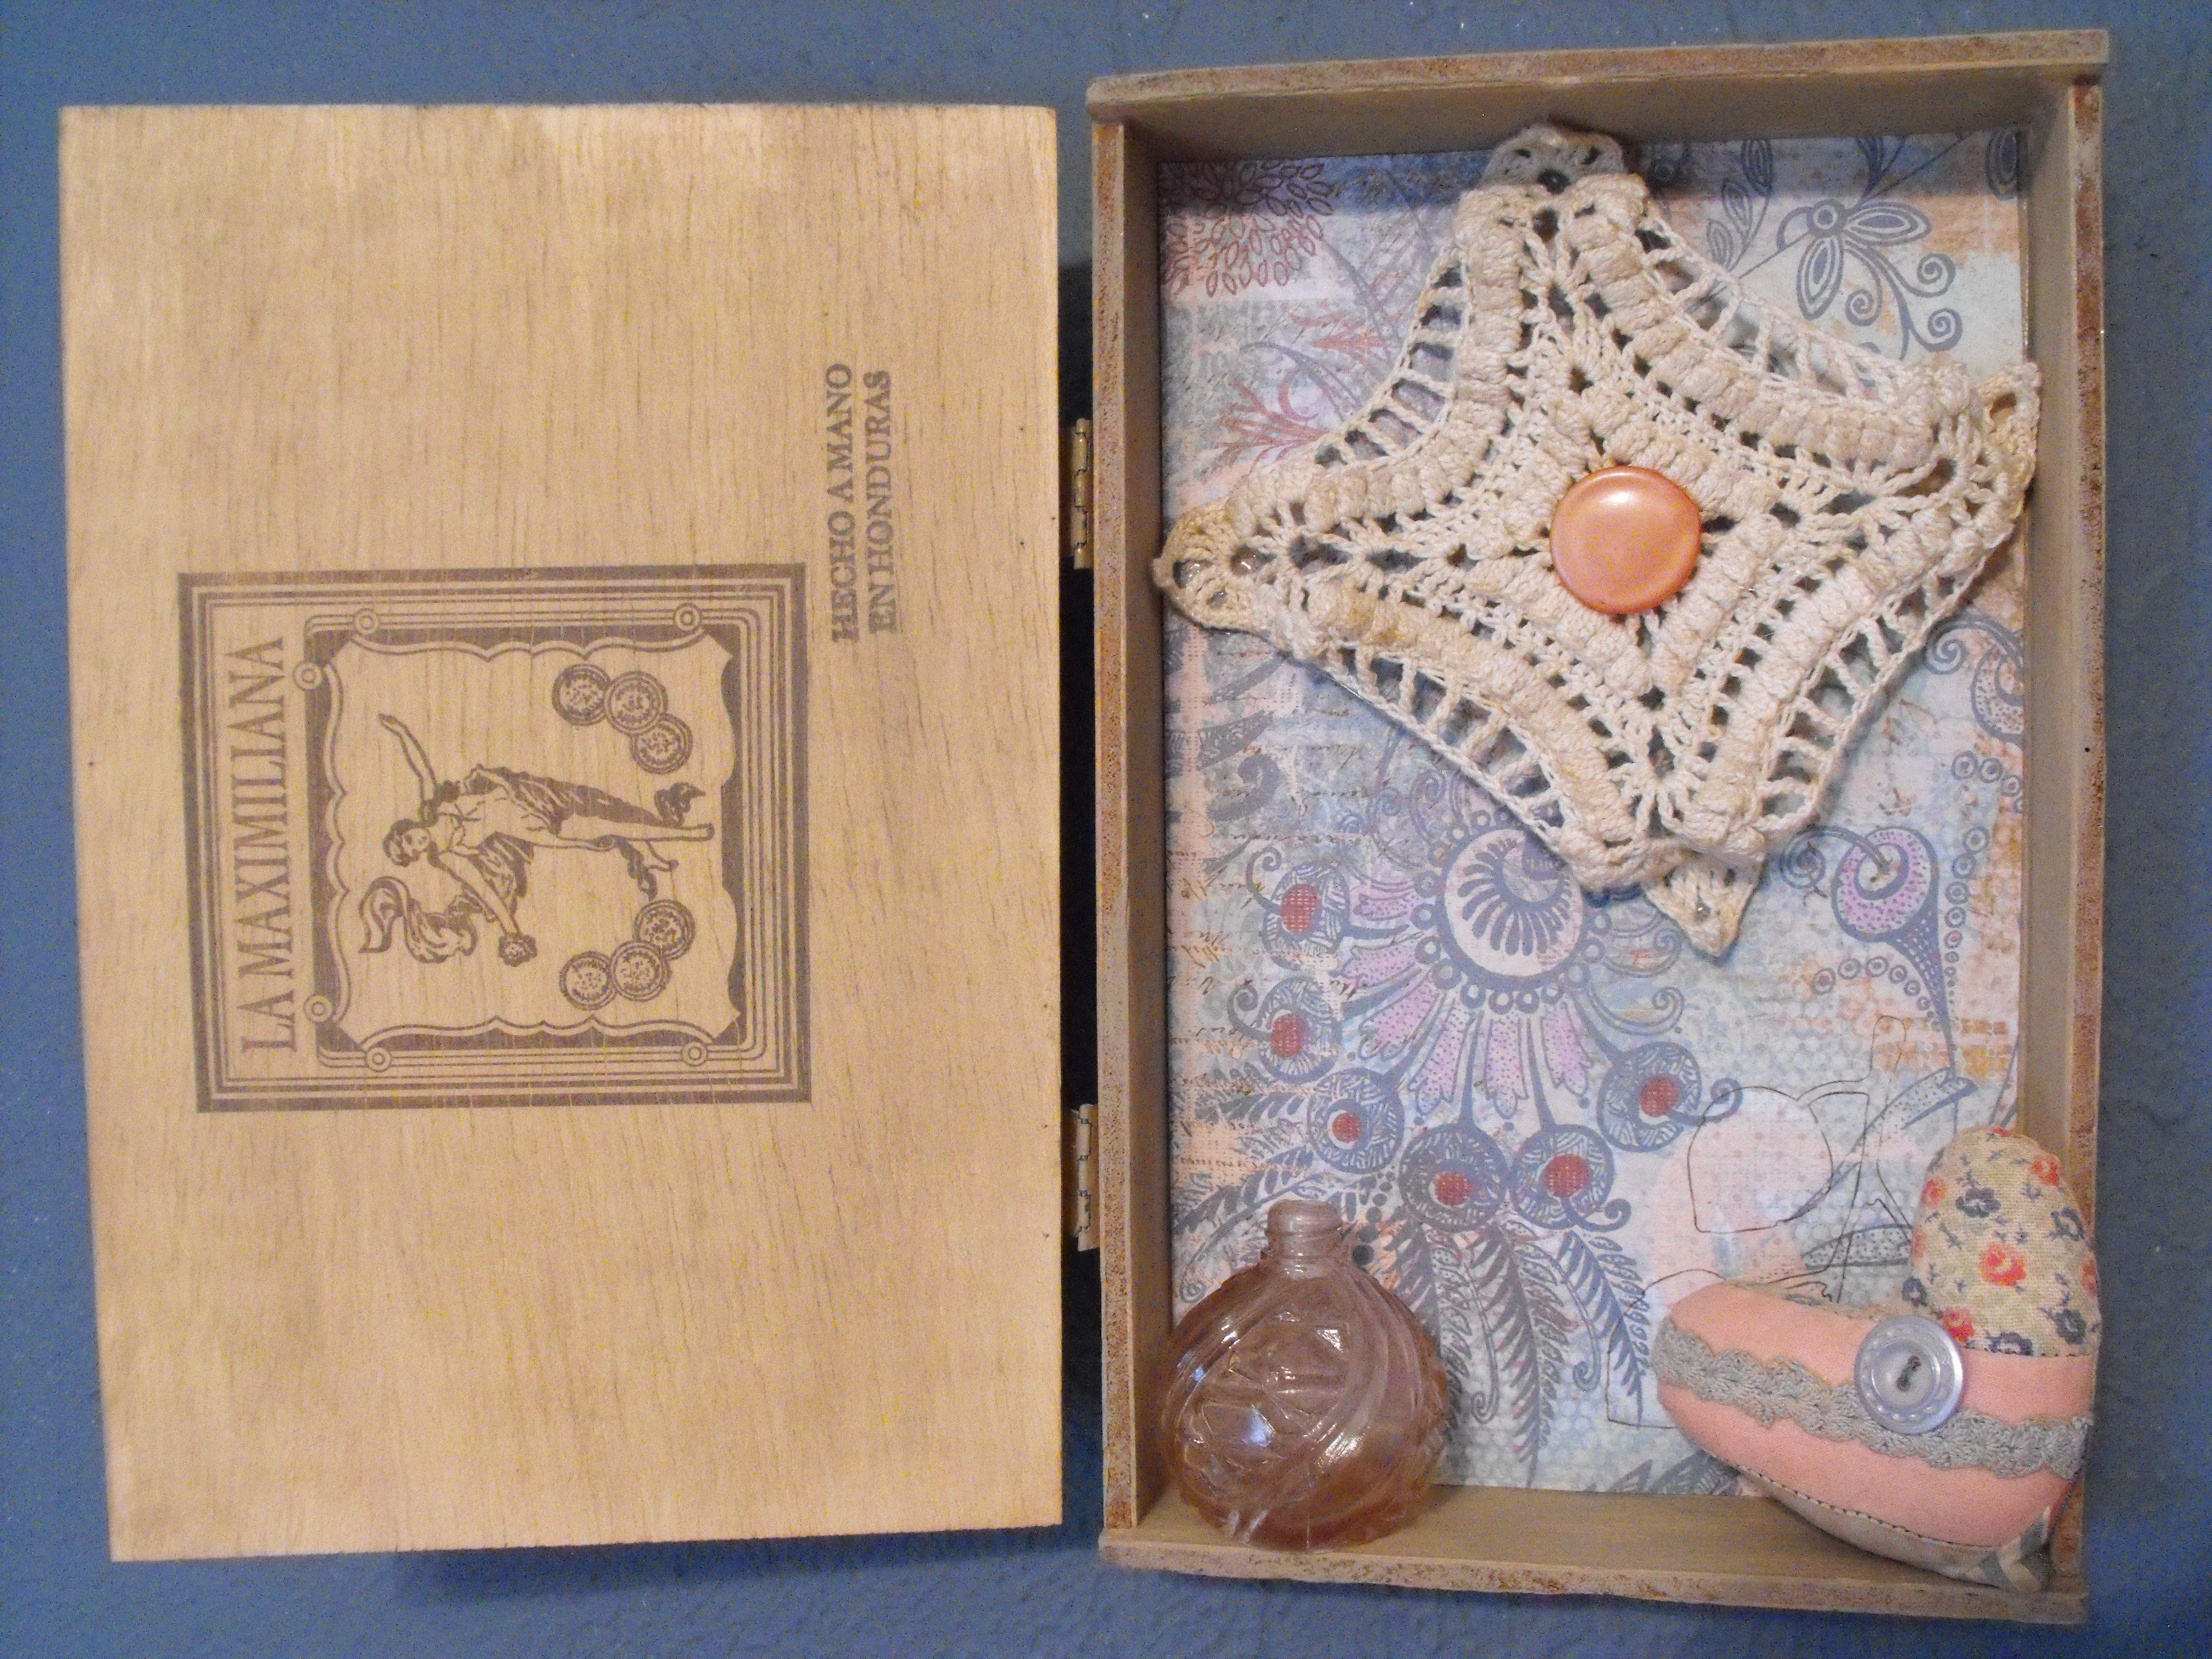 An old cigar box that I lined with scrapbooking paper, added a doily & button, plus other items I had collected.